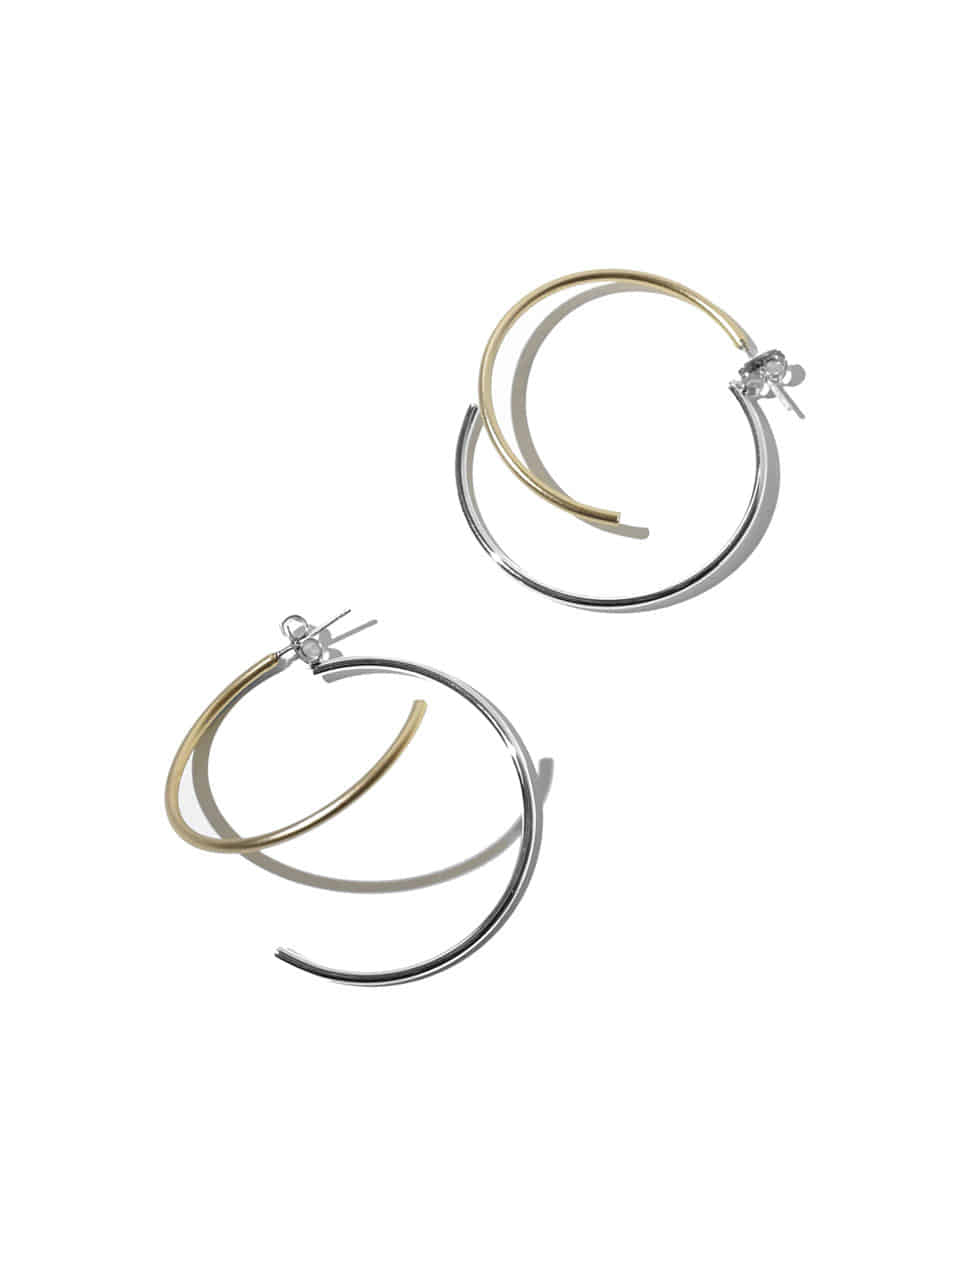 Plain layered ring earrings